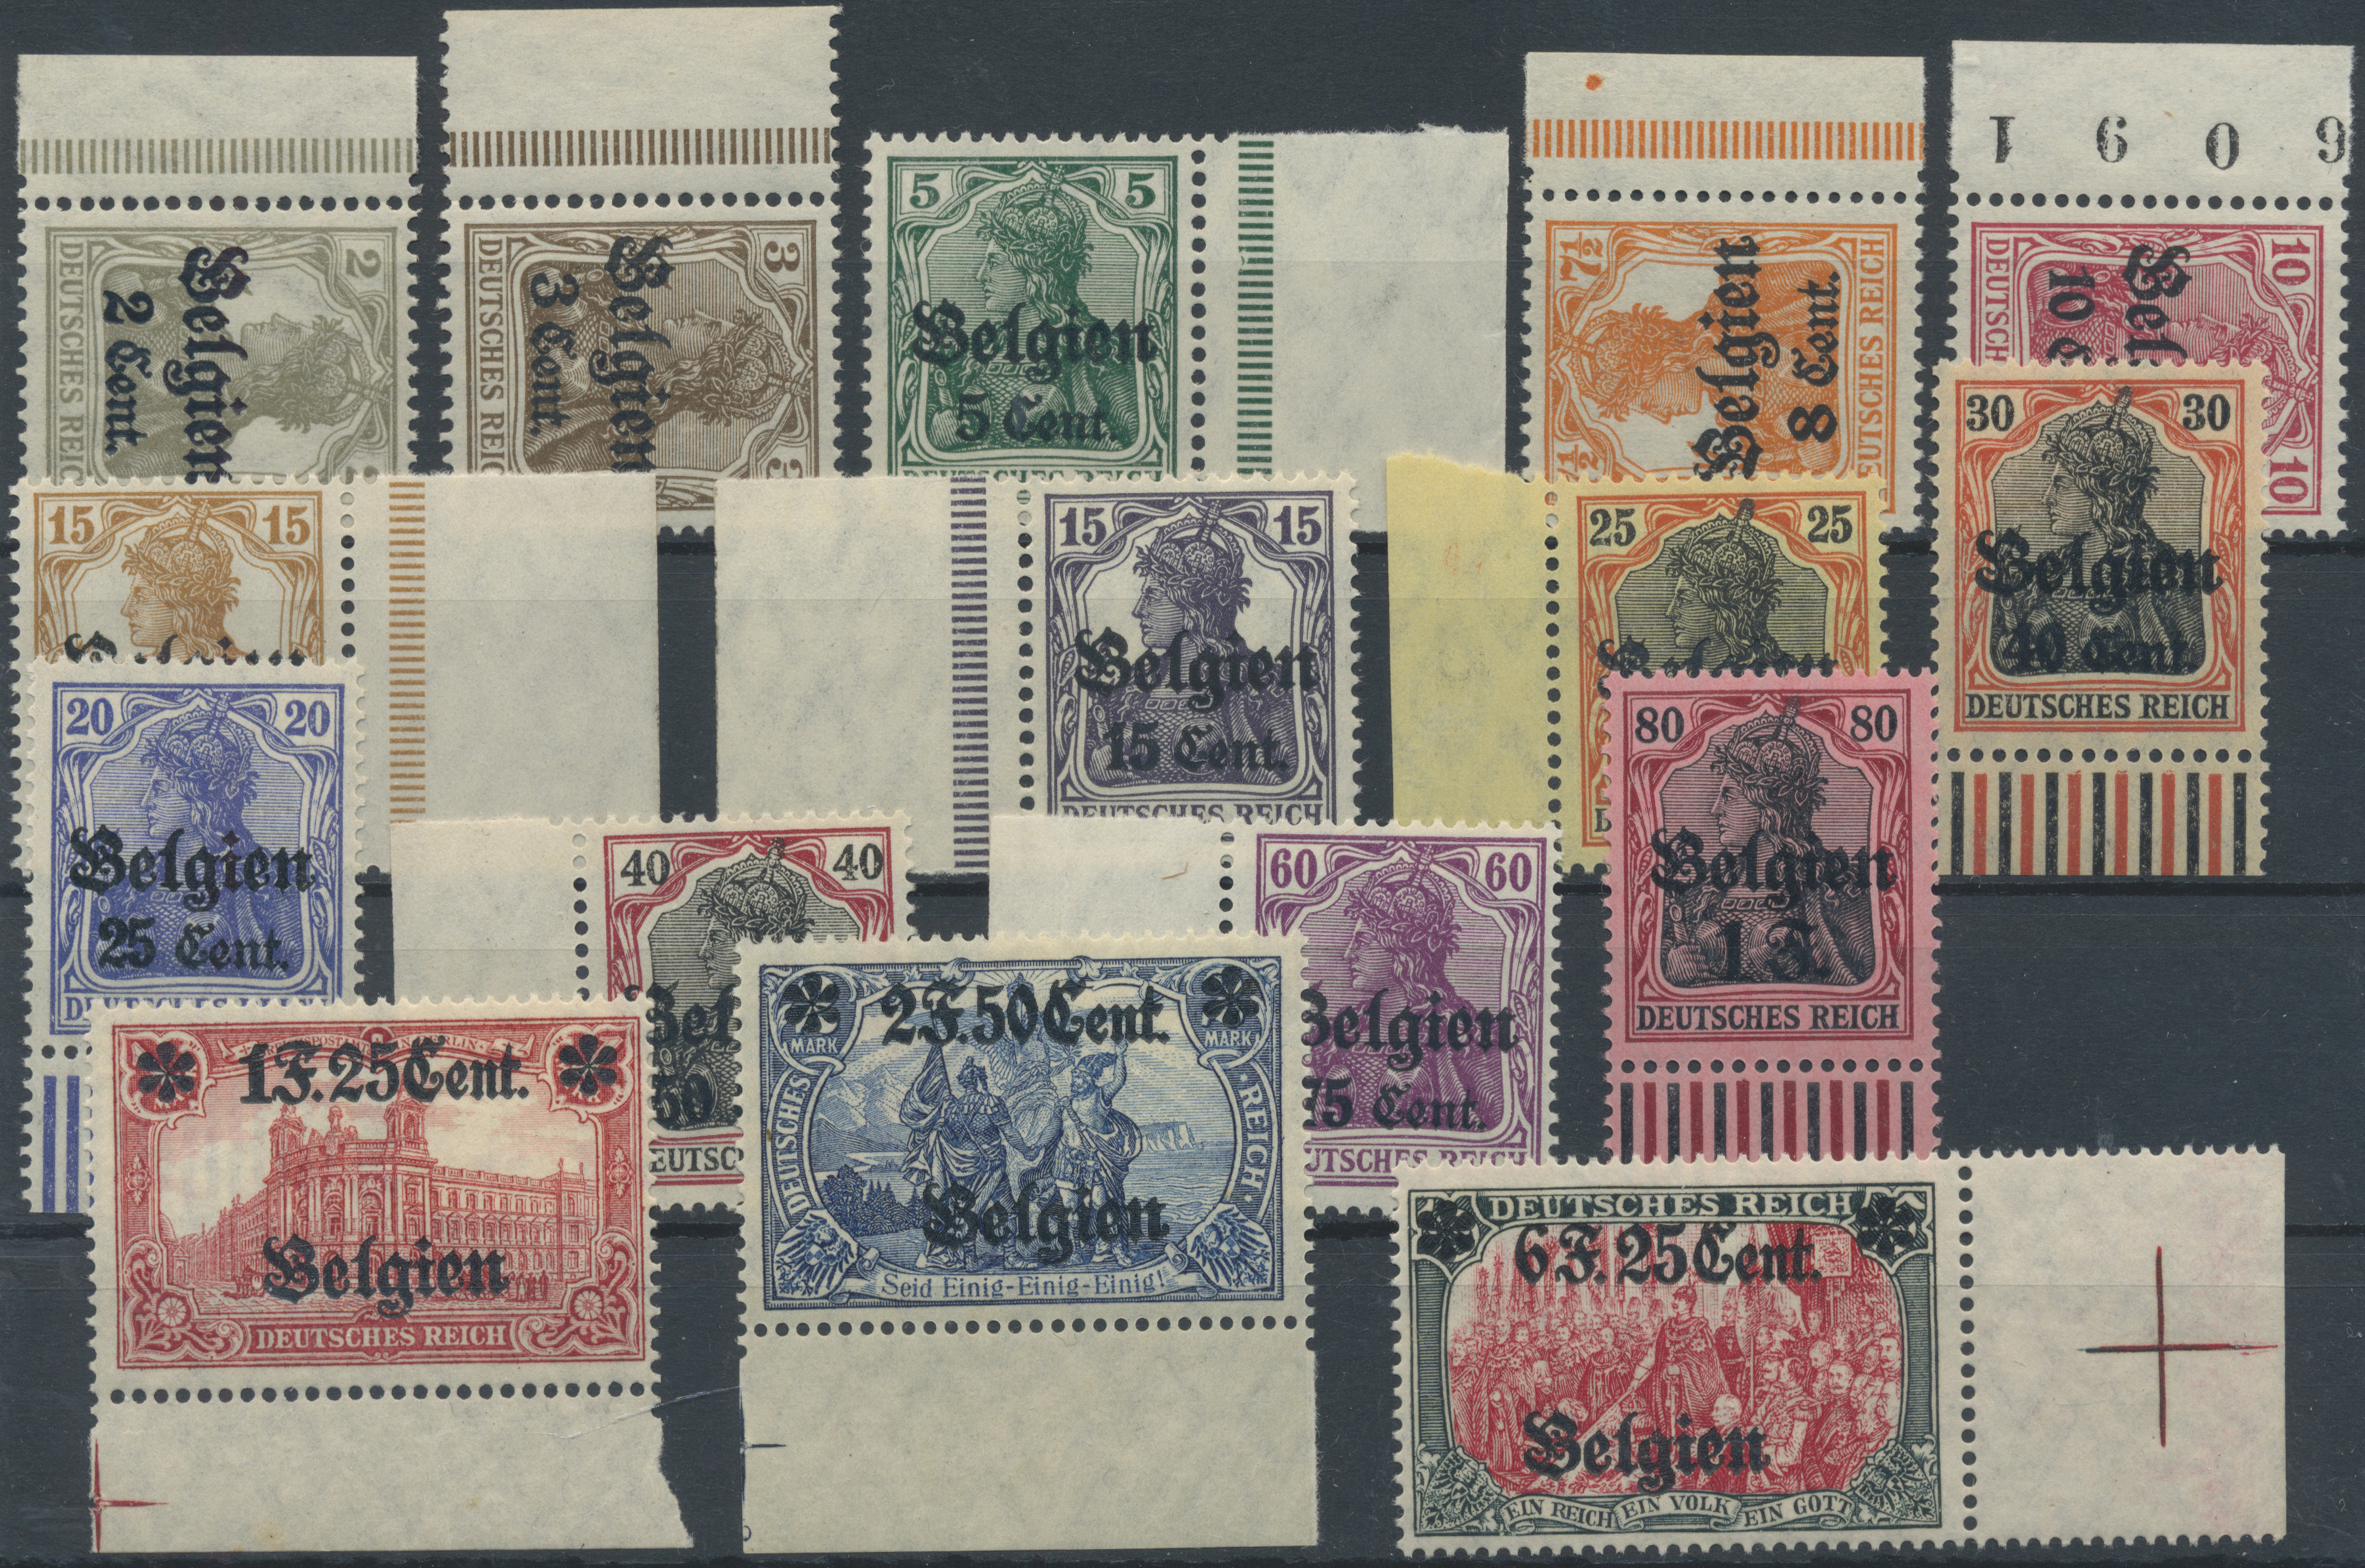 Lot 22630 - Deutsche Besetzung I. WK: Landespost in Belgien  -  Auktionshaus Christoph Gärtner GmbH & Co. KG Single lots Germany + Picture Postcards. Auction #39 Day 5